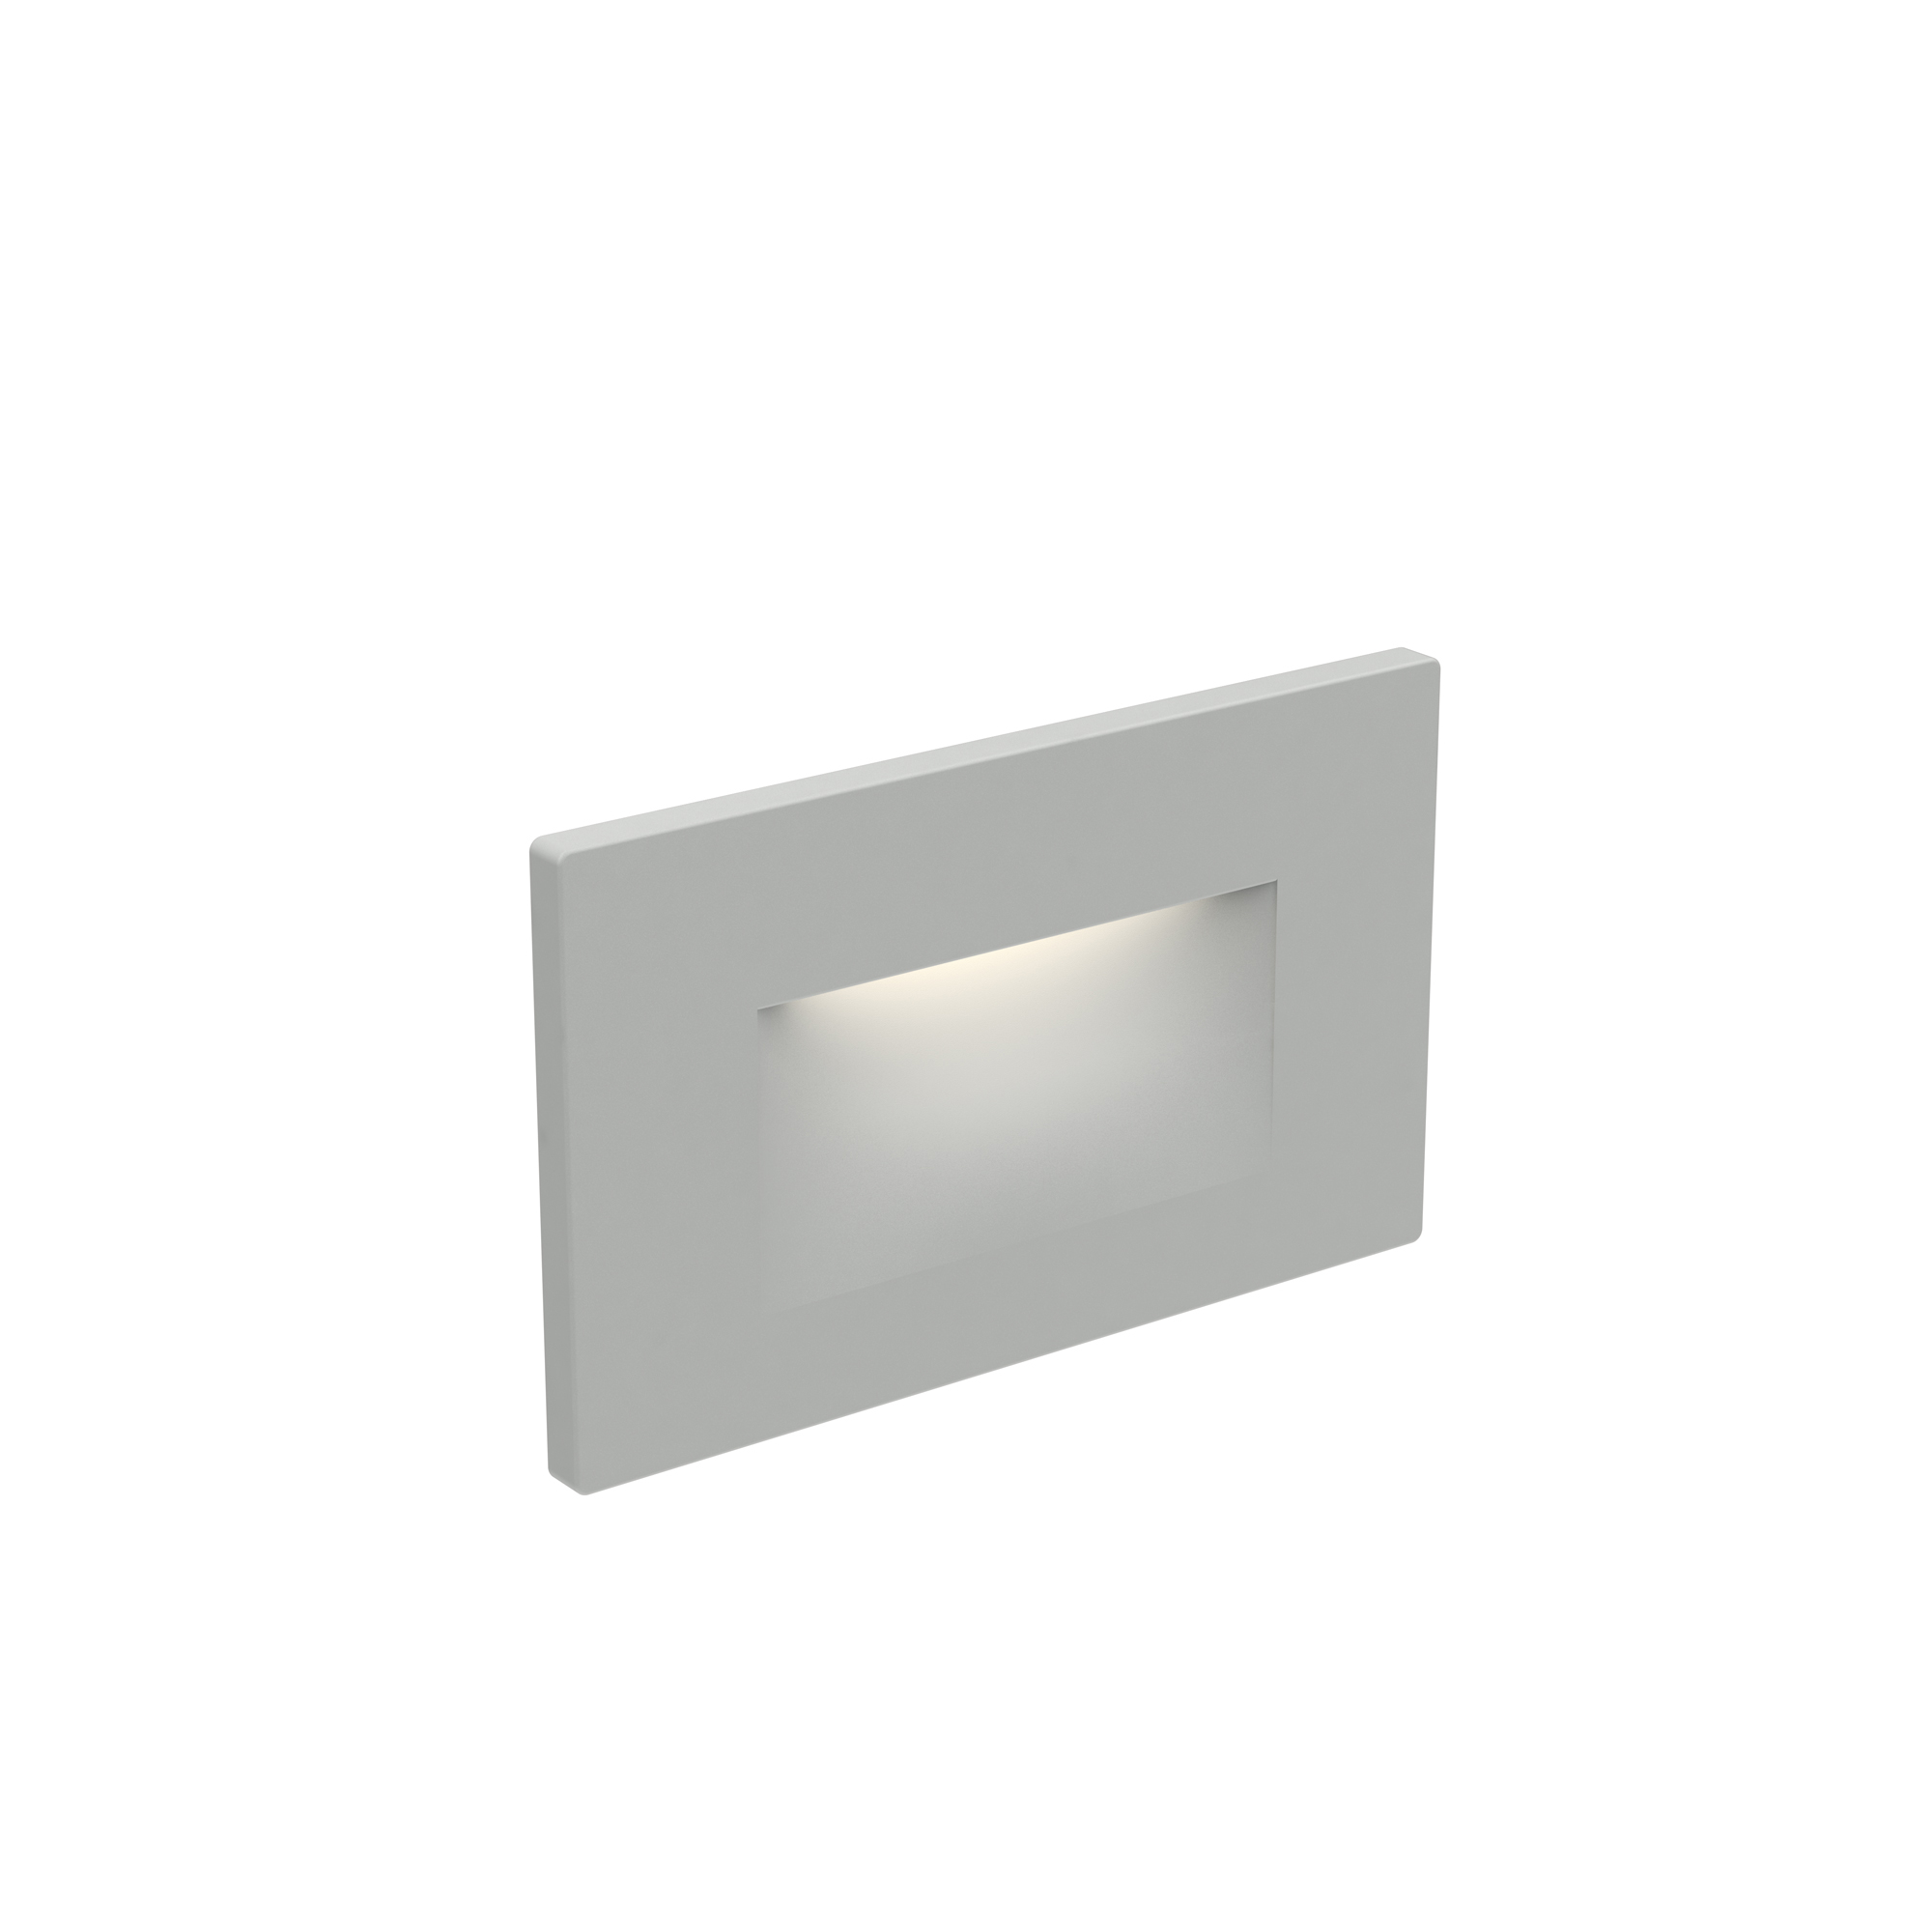 LEDSTEP005D - Recessed horizontal LED step light